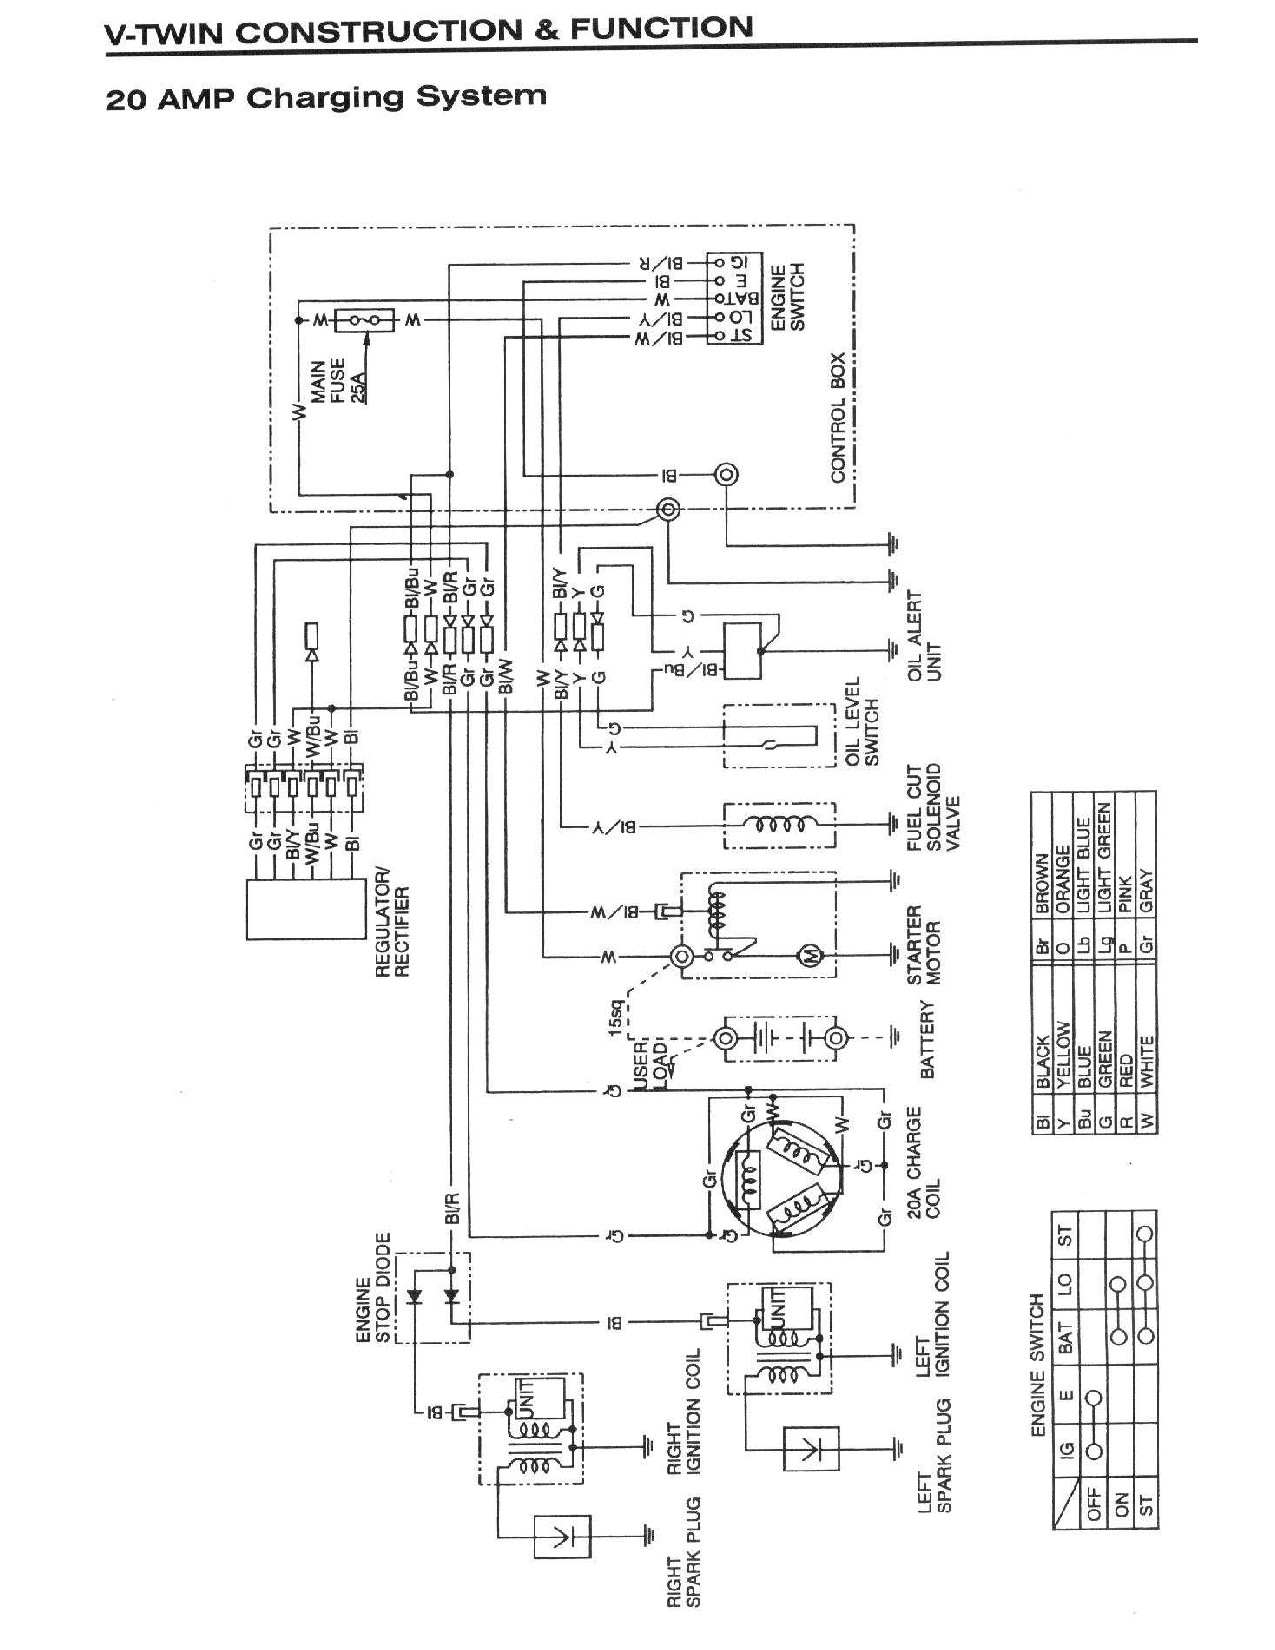 dell optiplex 390 motherboard diagram guitar 5 way switch wiring diagrams gx620 free download  oasis dl co